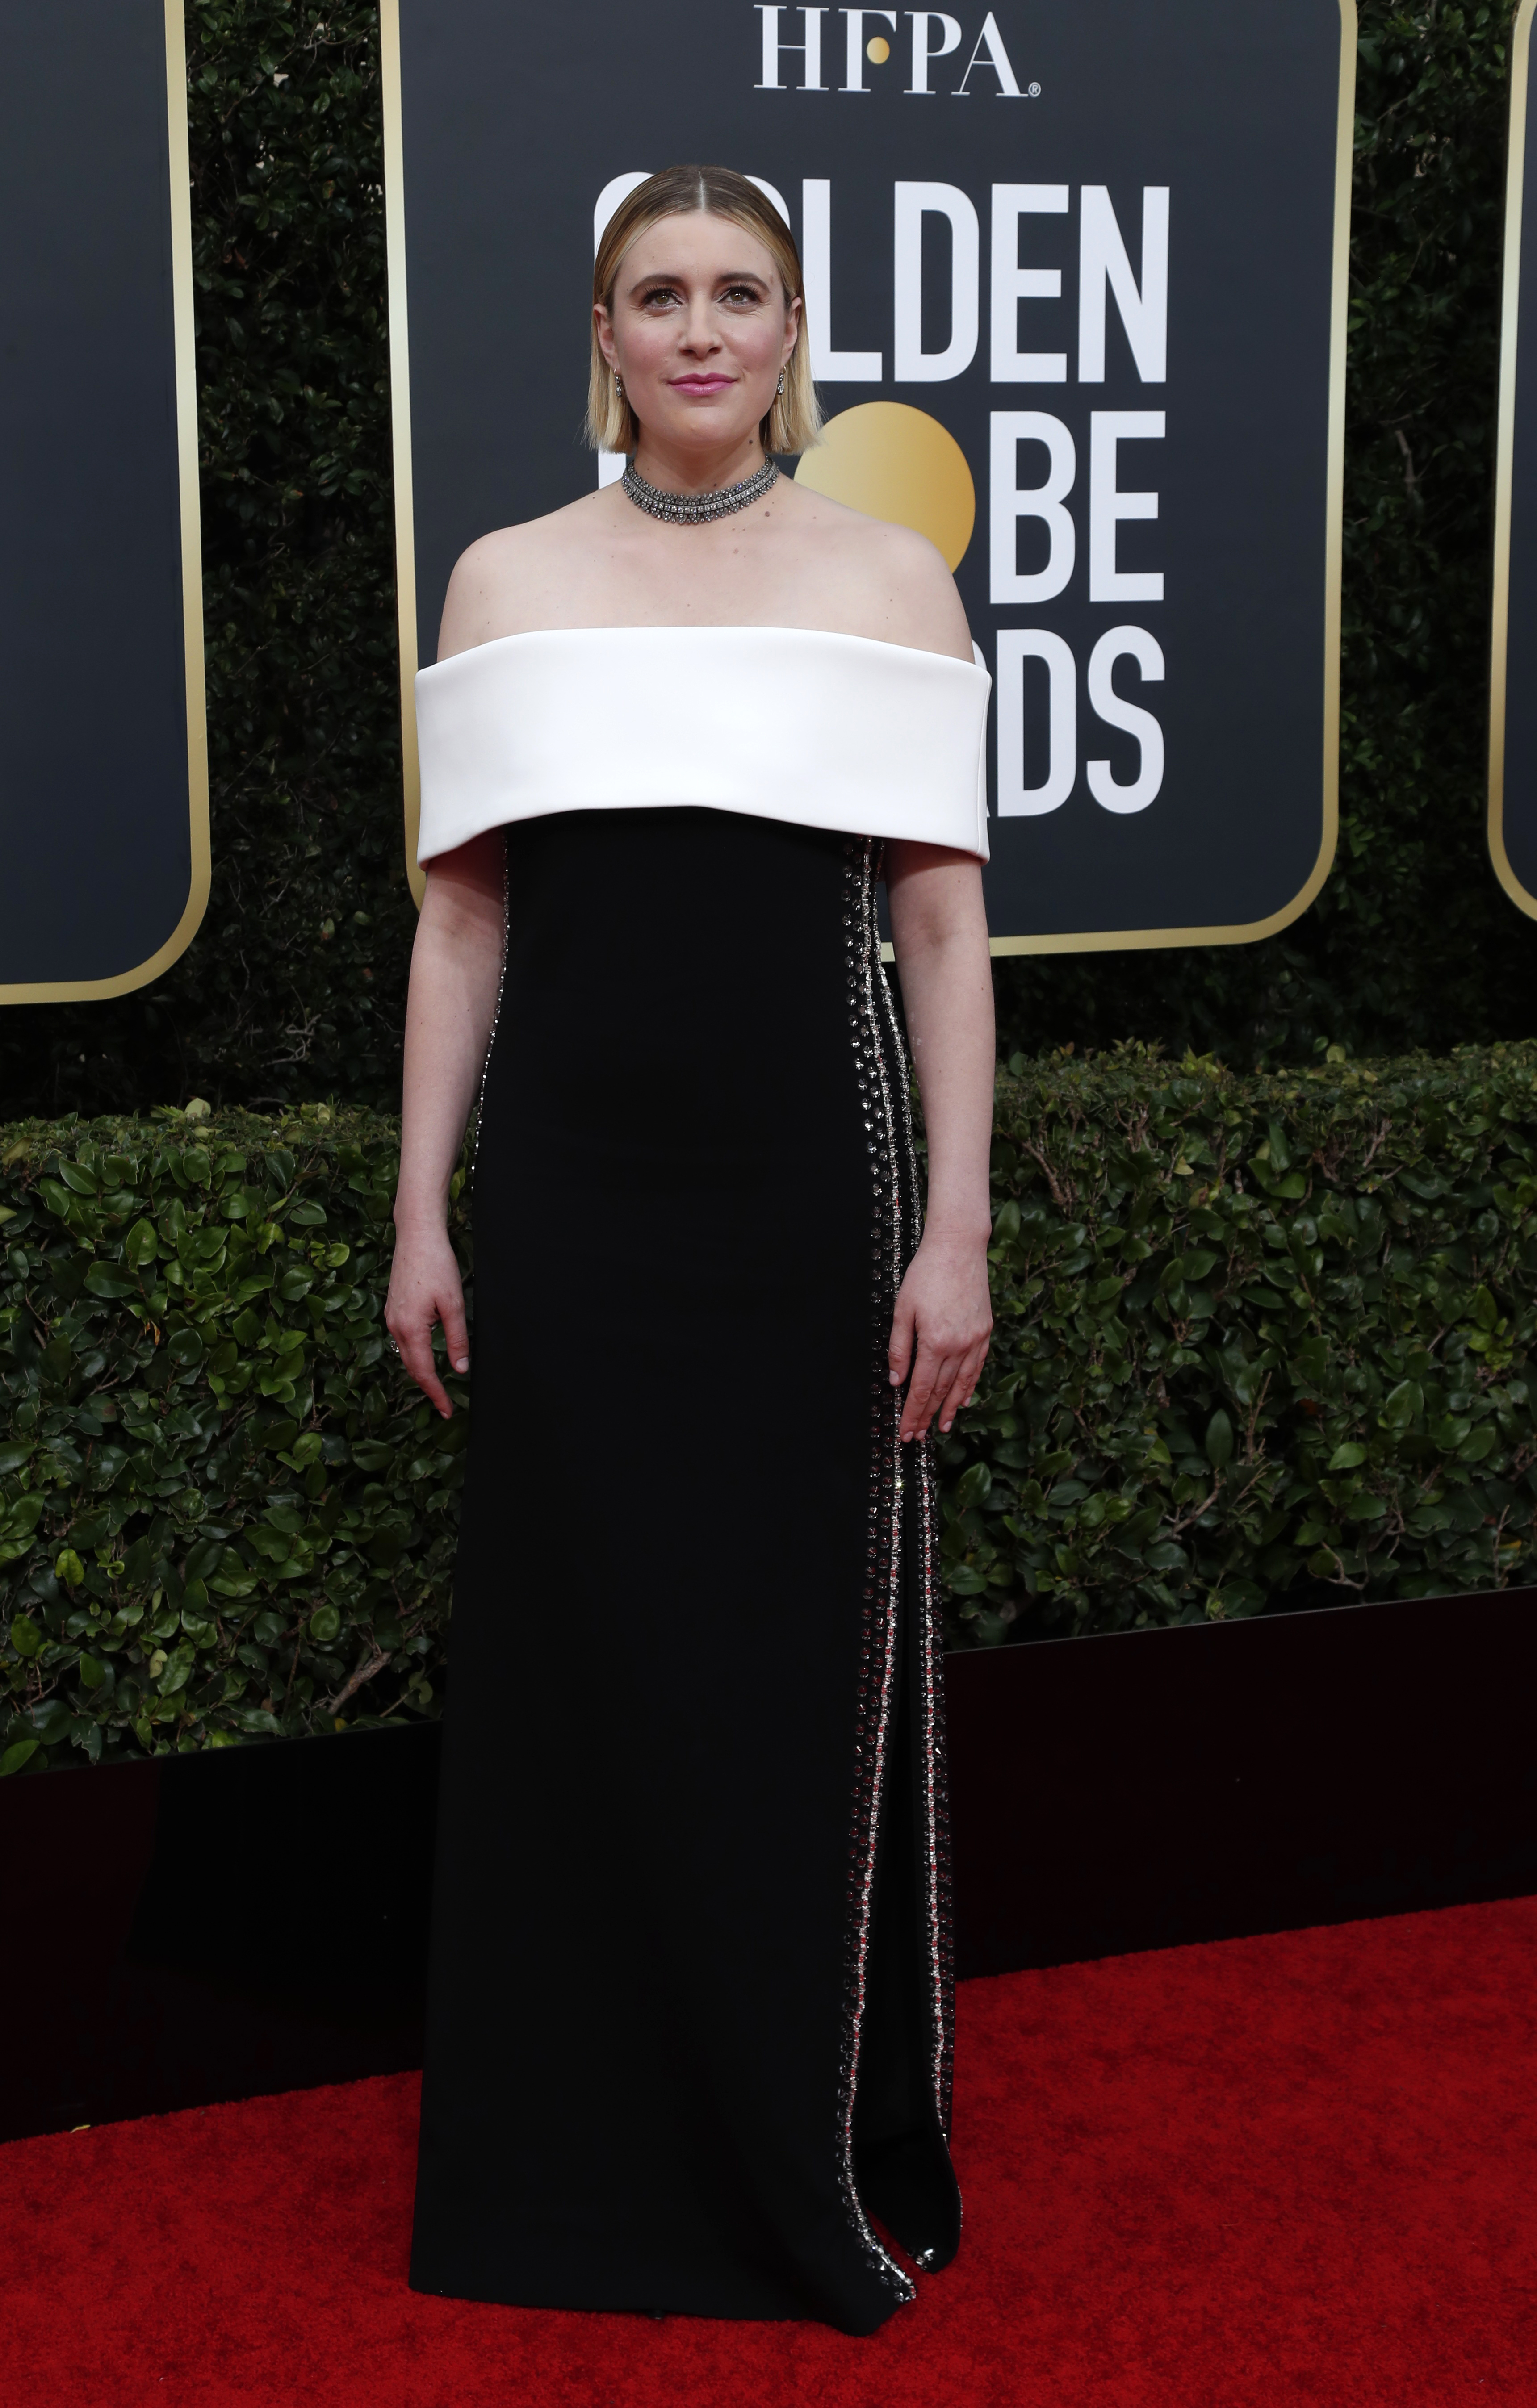 77th Golden Globe Awards - Arrivals - Beverly Hills, California, U.S., January 5, 2020 - Greta Gerwig. REUTERS/Mario Anzuoni